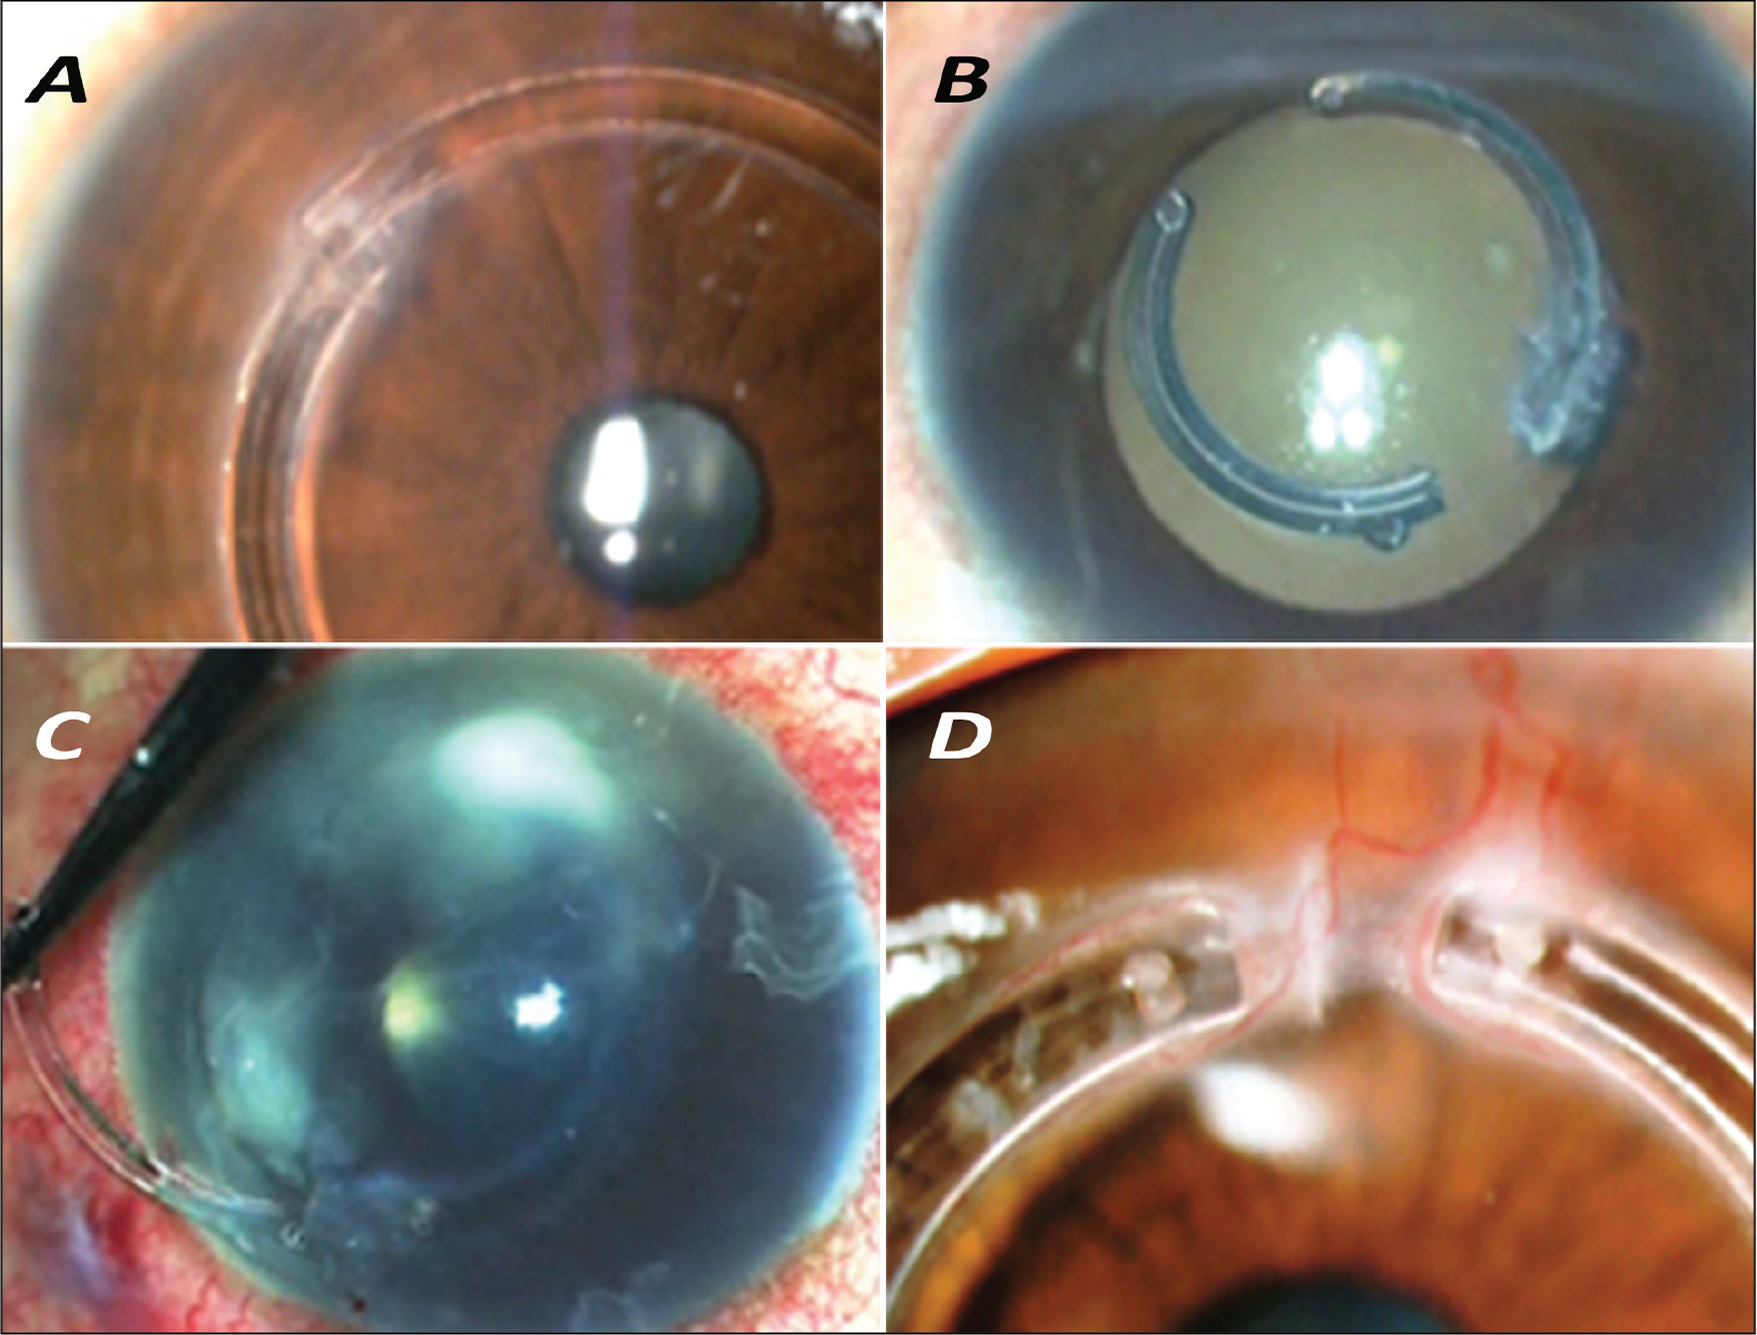 Complications of synthetic intrastromal corneal ring segments (ICRS). (A) Migration and over-riding of synthetic ICRS. (B) Stromal melt and necrosis over synthetic ICRS. (C) Infectious keratitis associated with synthetic ICRS. (D) Corneal neovascularization induced by synthetic ICRS.